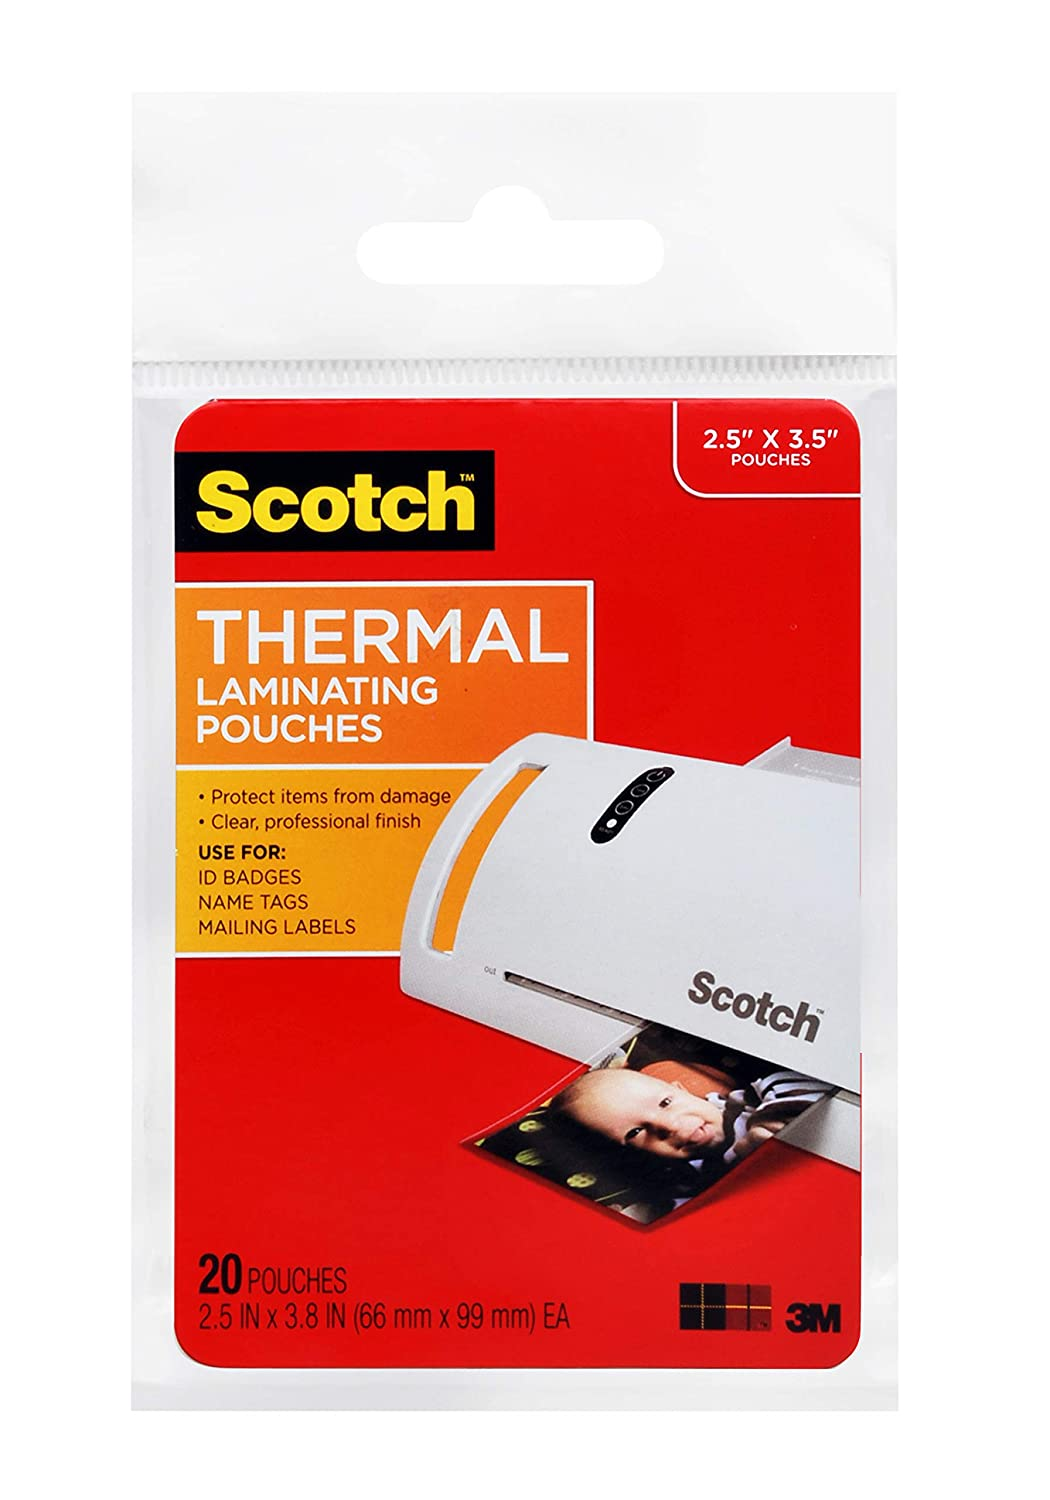 Scotch Thermal Laminating Pouches Wallet Size 20-Pack TP5904-20 2.5 x 3.5-Inches